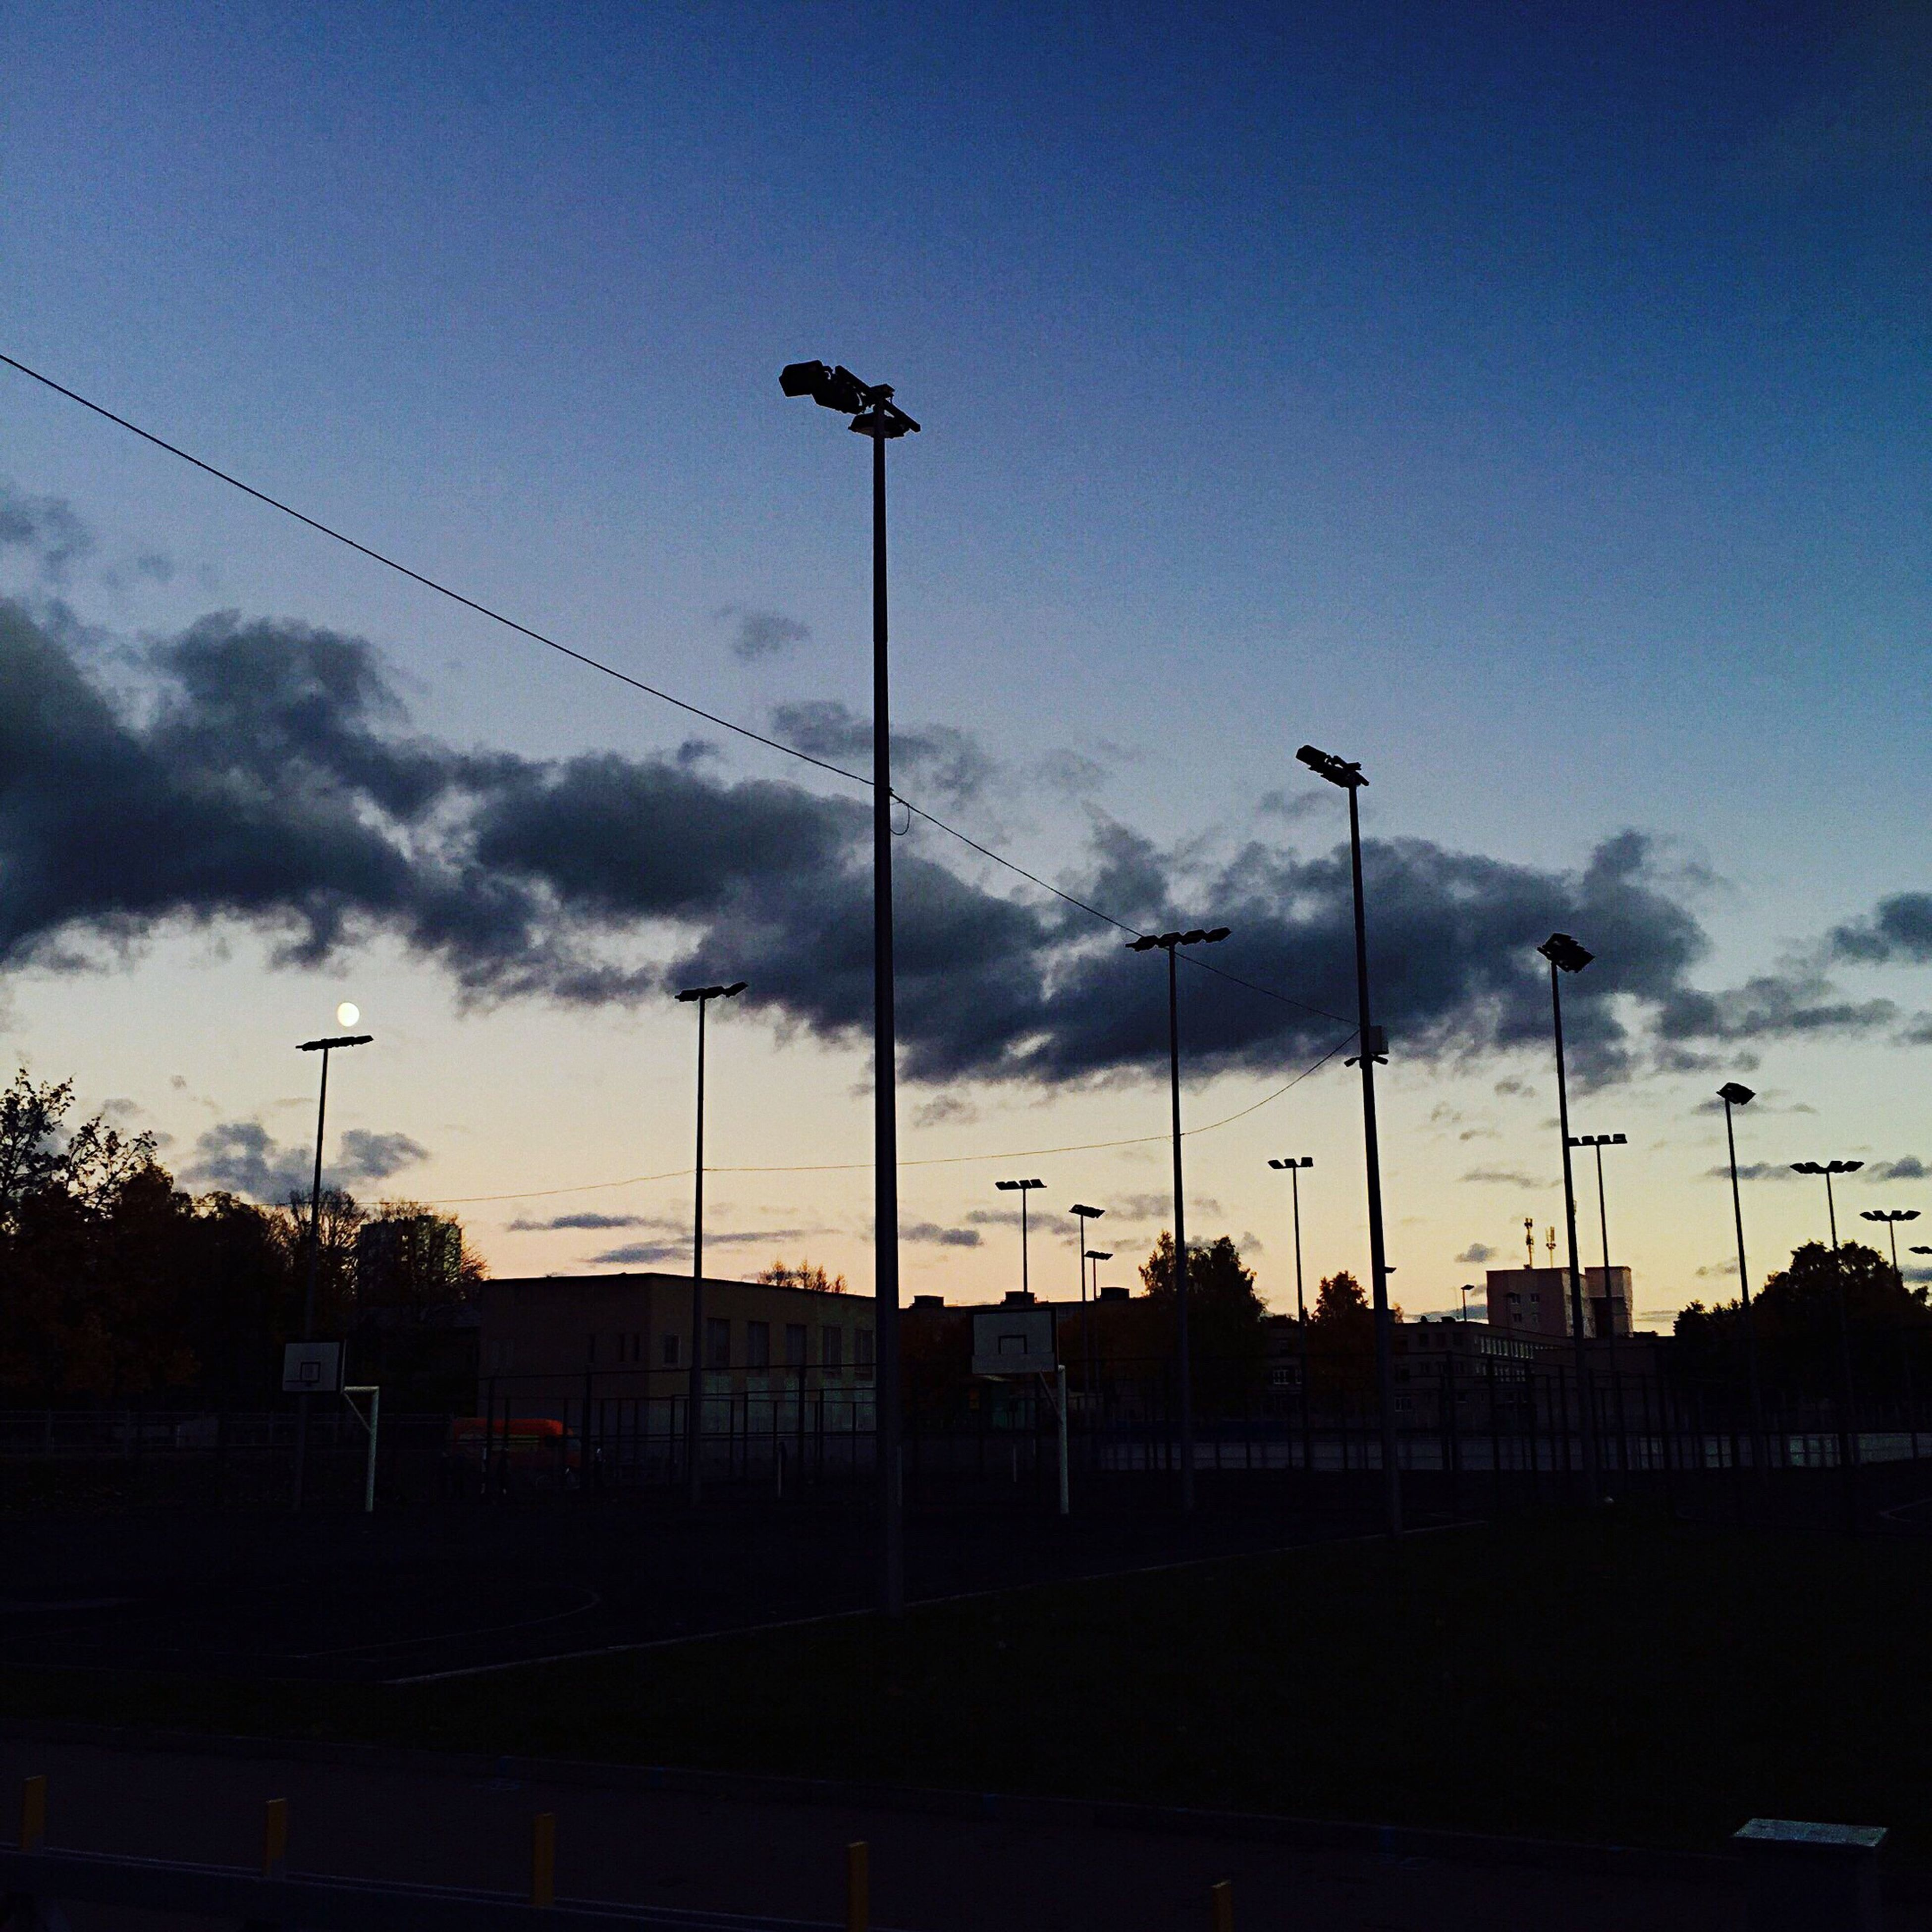 building exterior, built structure, sky, architecture, silhouette, street light, low angle view, cloud - sky, dusk, electricity pylon, city, electricity, cloud, power line, lighting equipment, fuel and power generation, house, outdoors, no people, sunset